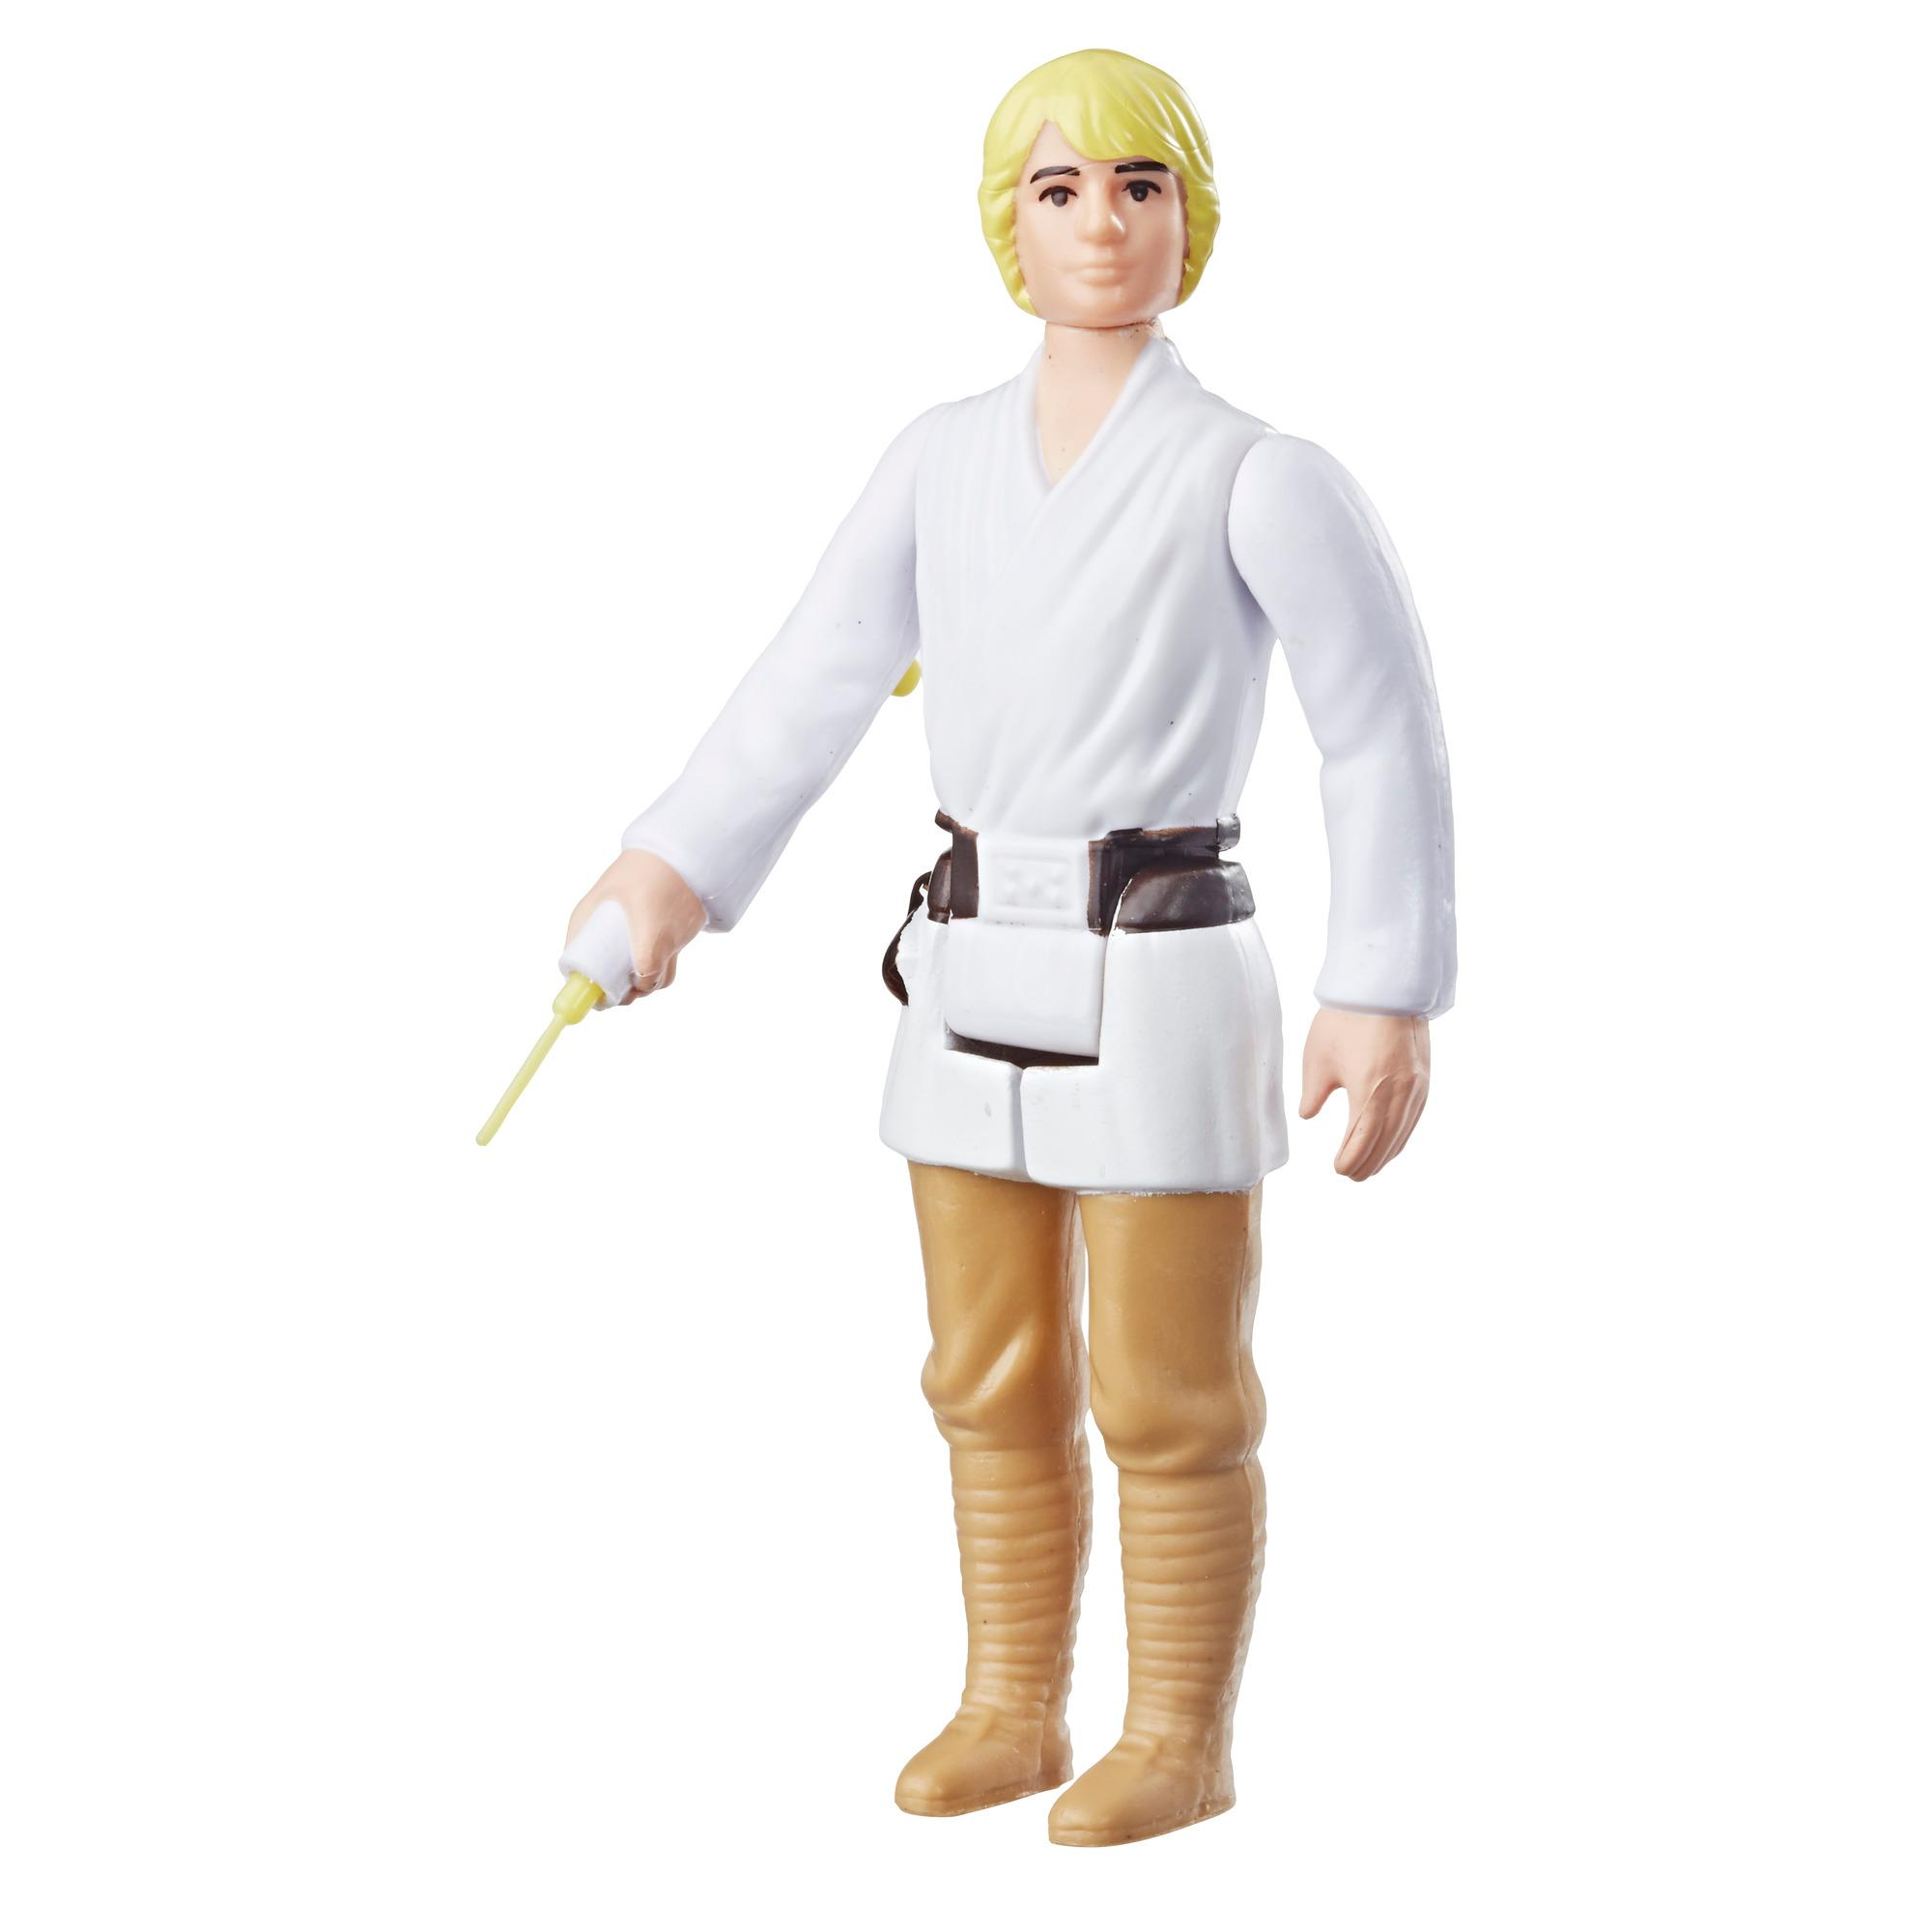 Star Wars Retro Collection Episode IV: A New Hope Luke Skywalker 3.75-Inch-Scale Action Figure Toy – Inspired by Classic 1970s-Sculpt and Packaging Collectible Star Wars Figure